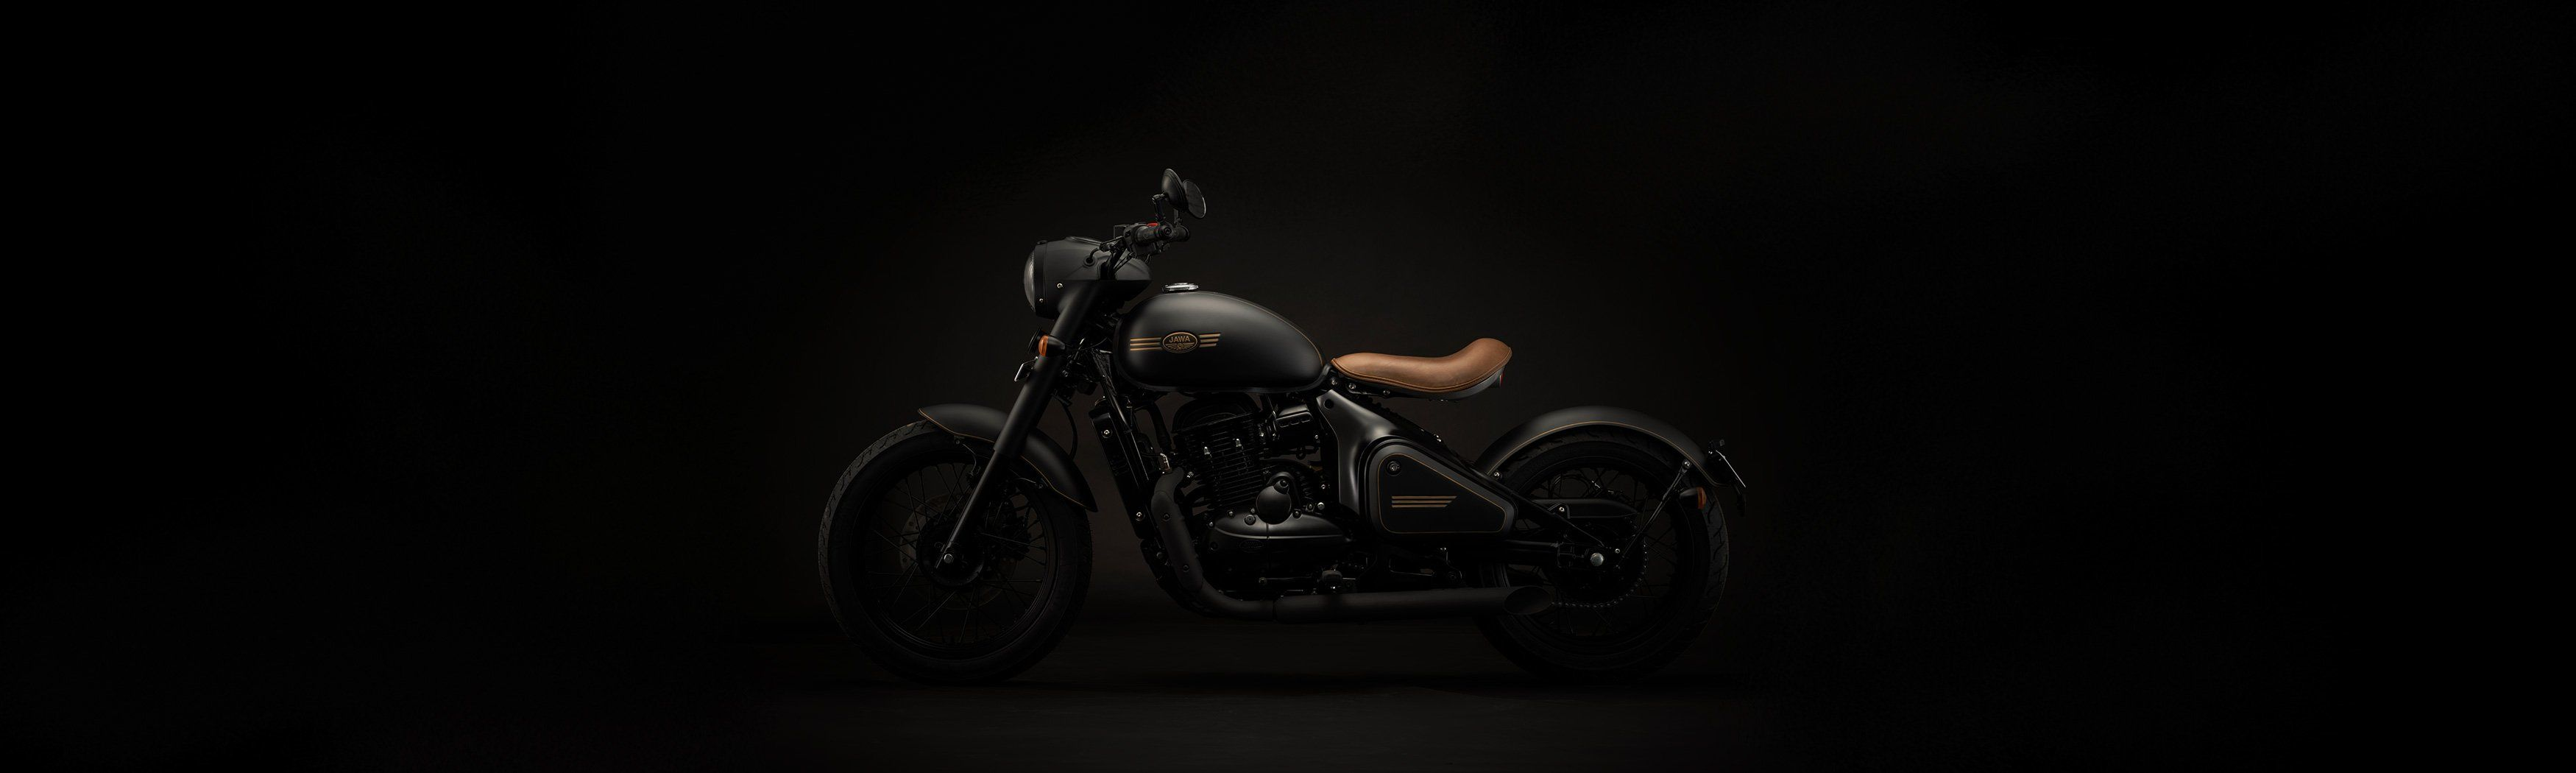 The company will open bookings for its new bikes from January 1 and the deliveries will start from April 2.